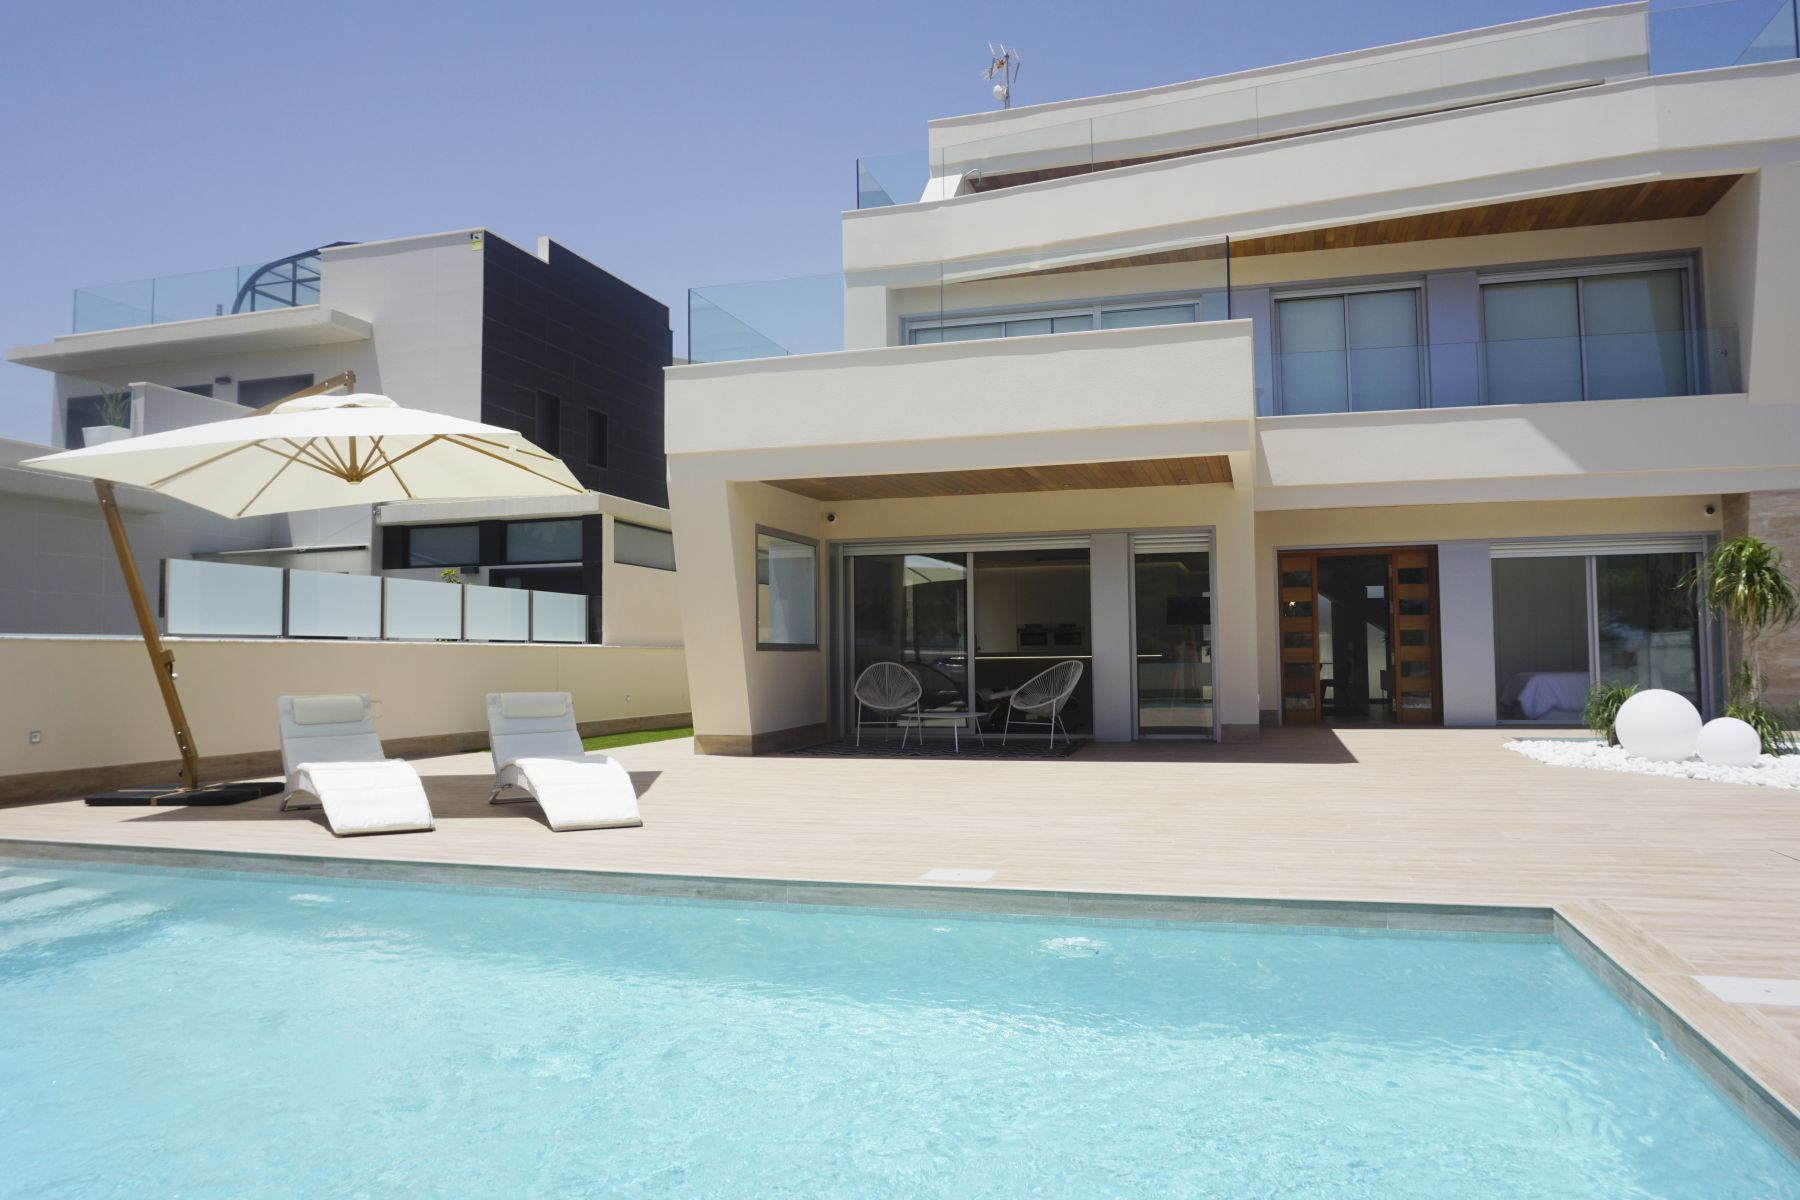 4 Bedrooms Luxury Villa For Sale in Campoamor With Basement